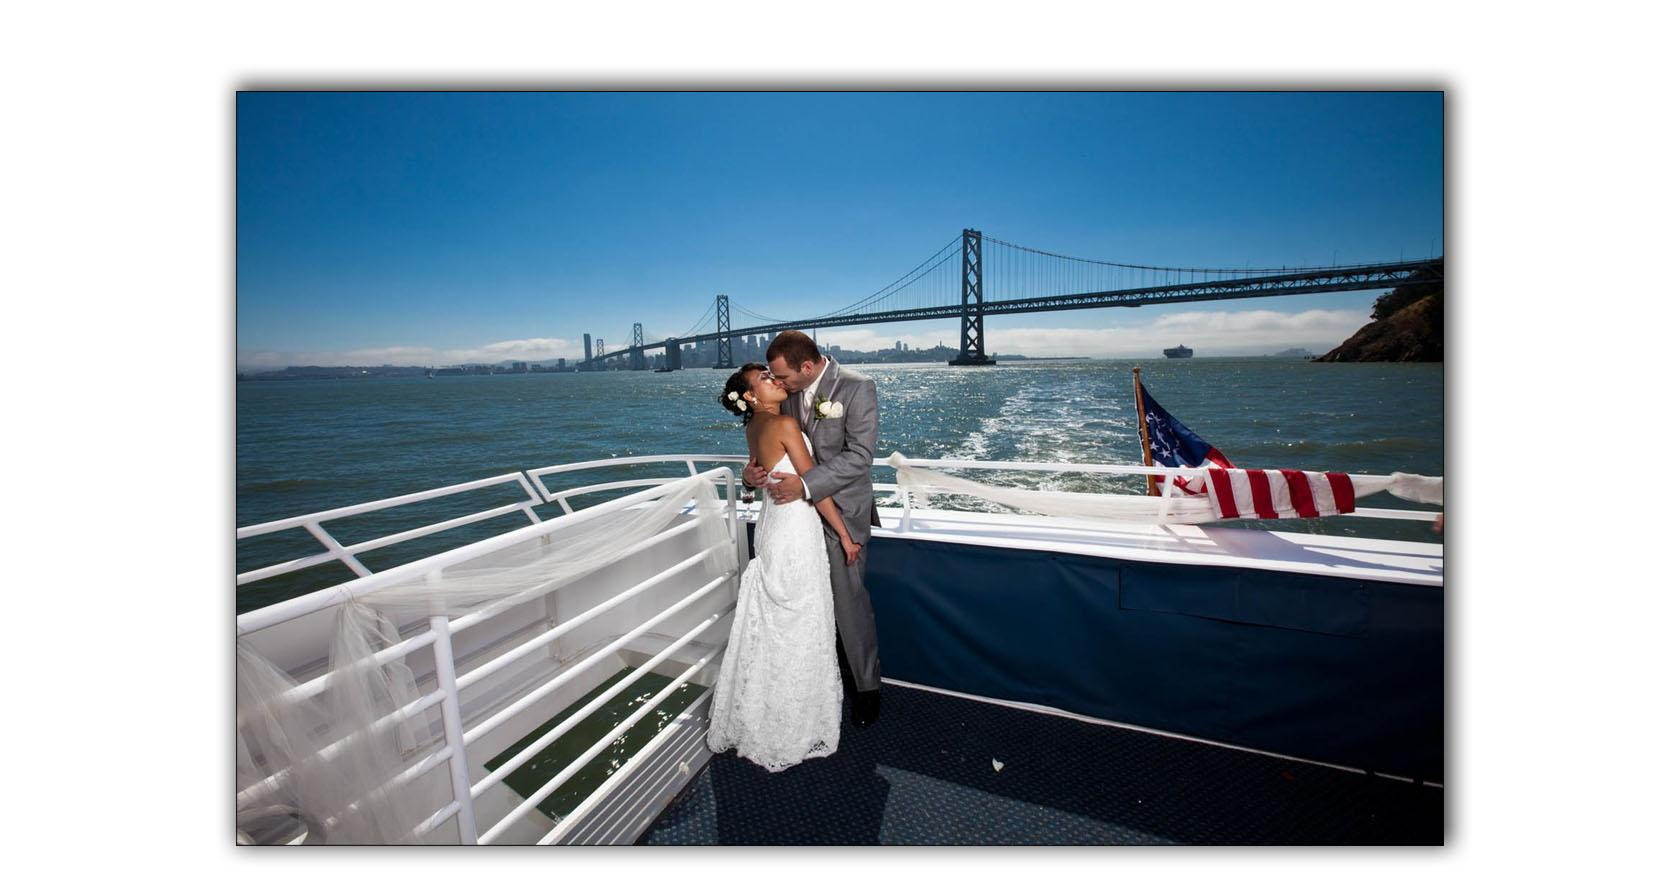 San Francisco Bay yacht boat wedding cruise Commodore Events Merlot